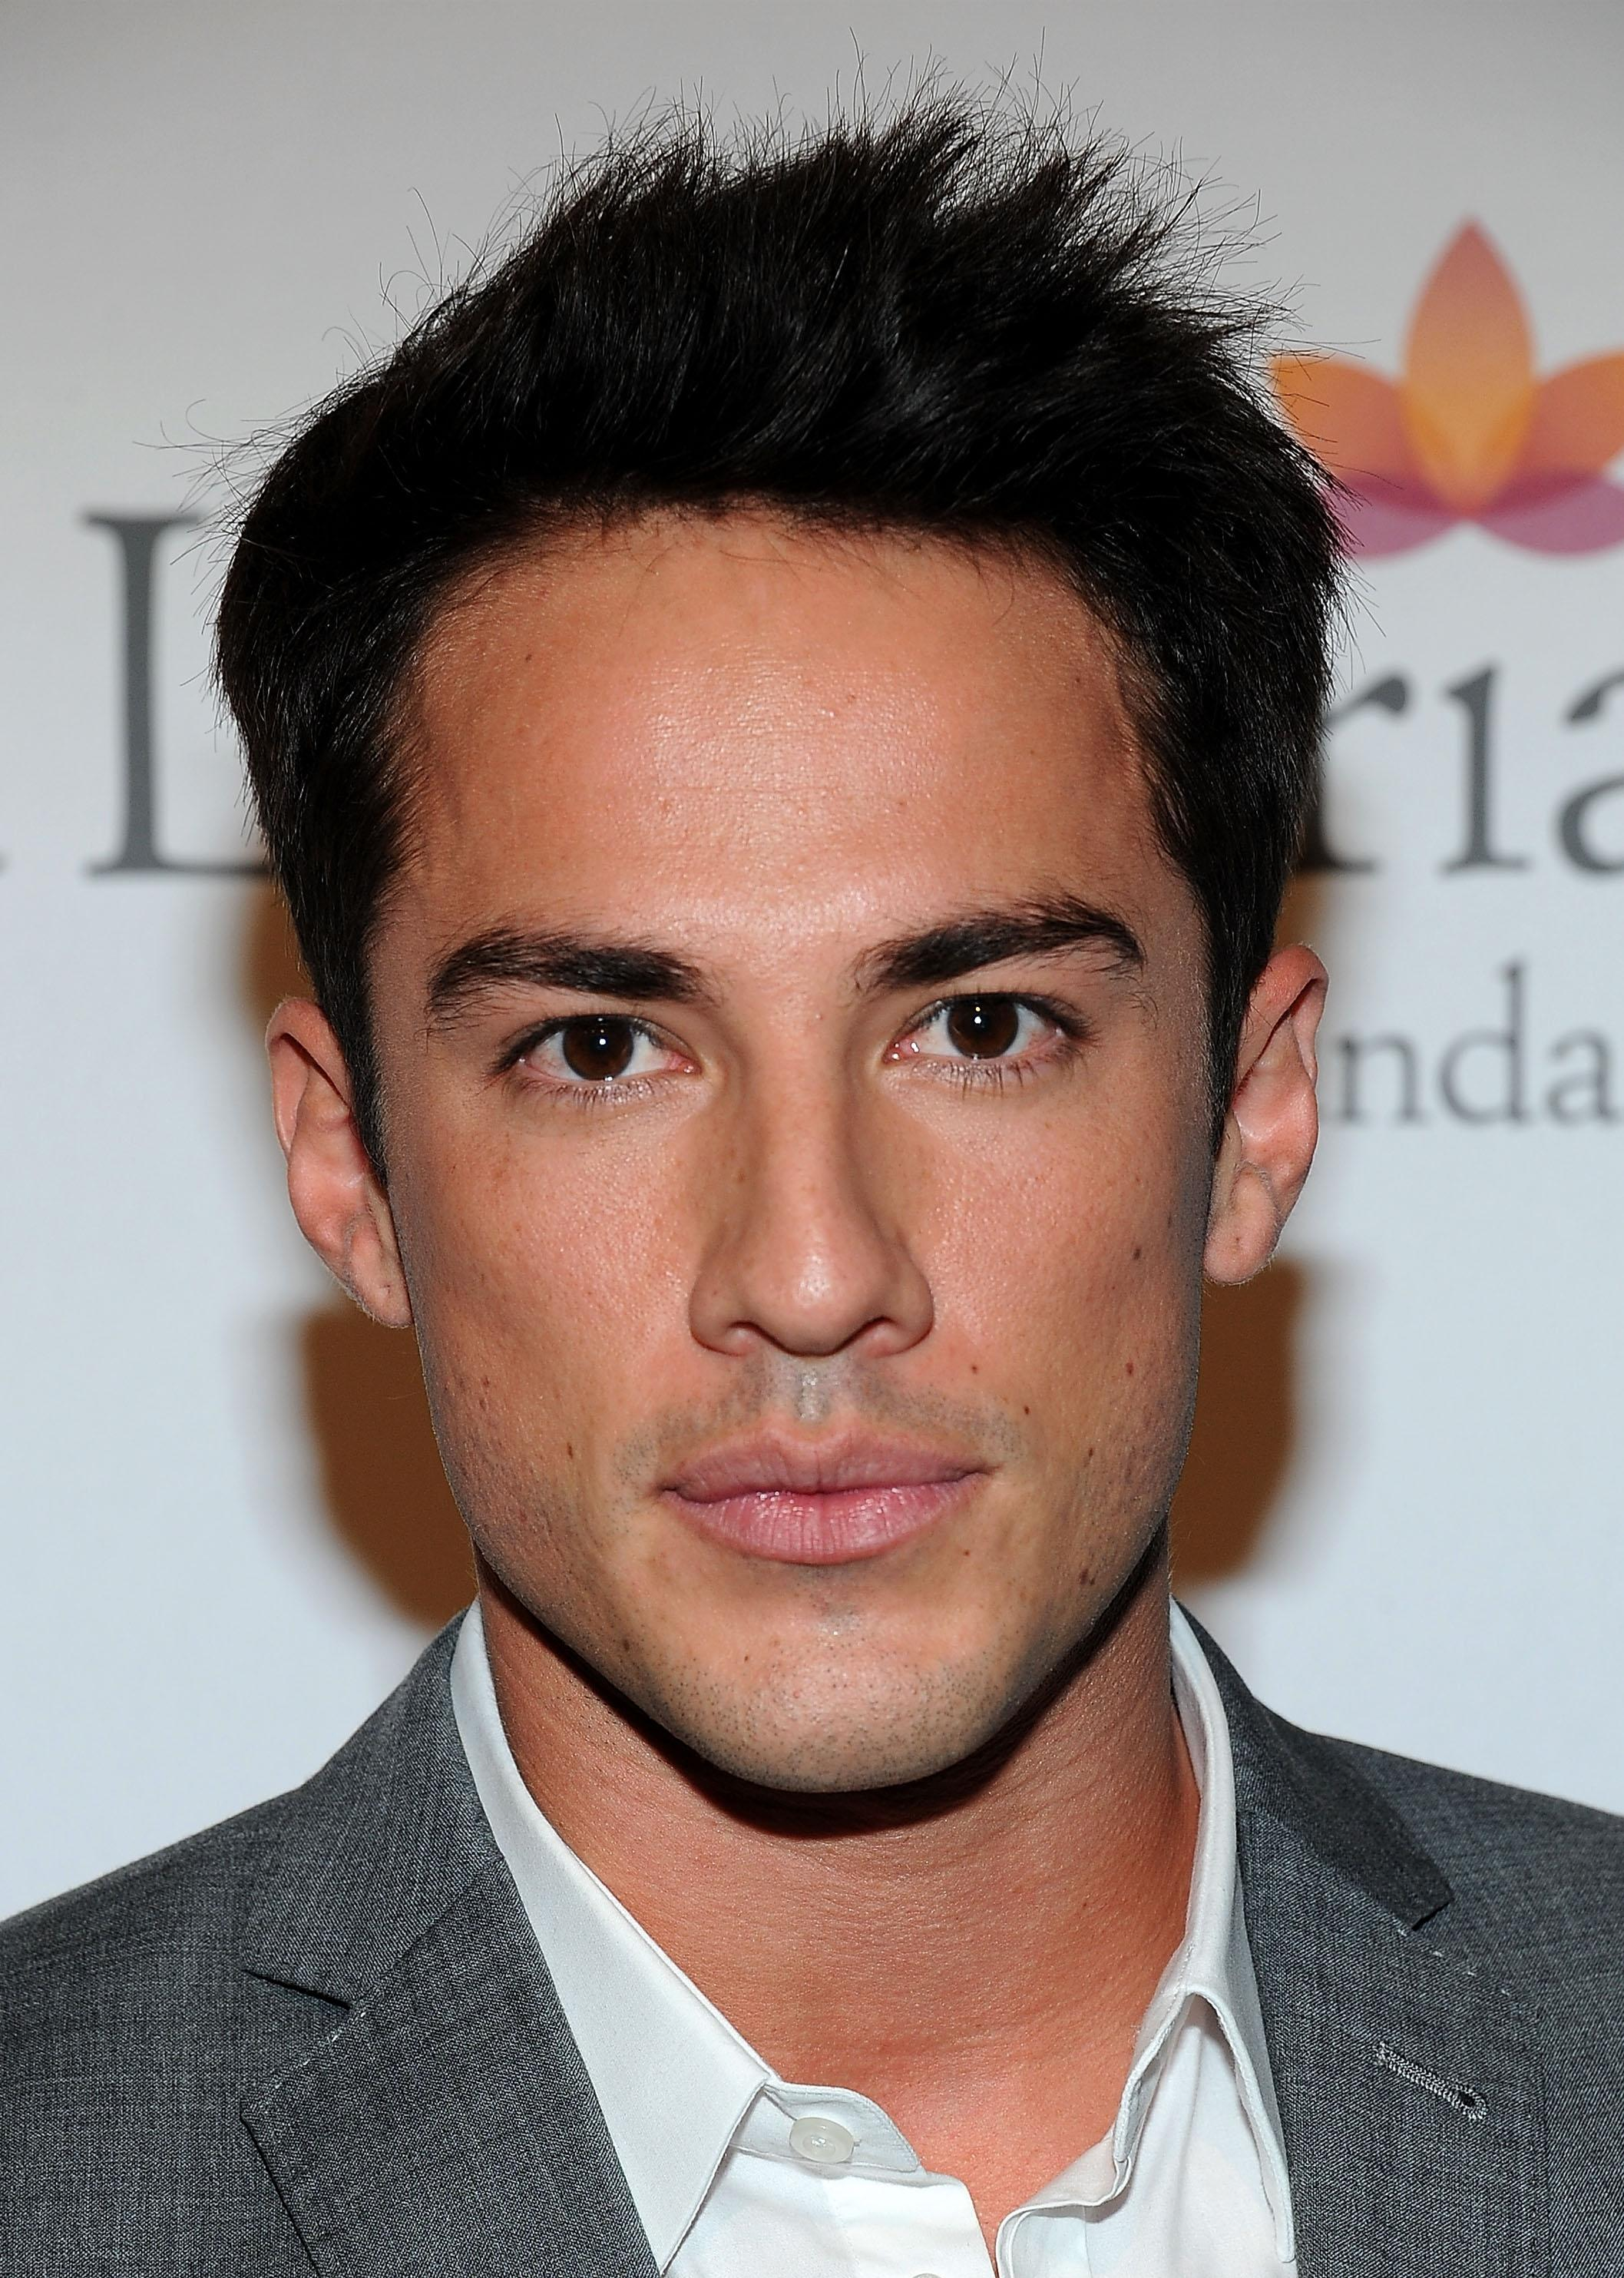 michael trevino girlfriendmichael trevino instagram, michael trevino gif, michael trevino wife, michael trevino height, michael trevino and nina dobrev, michael trevino png, michael trevino girlfriend, michael trevino gif hunt, michael trevino ethnicelebs, michael trevino top, michael trevino glasses, michael trevino imdb, michael trevino vampire diaries, michael trevino tumblr, michael trevino dating